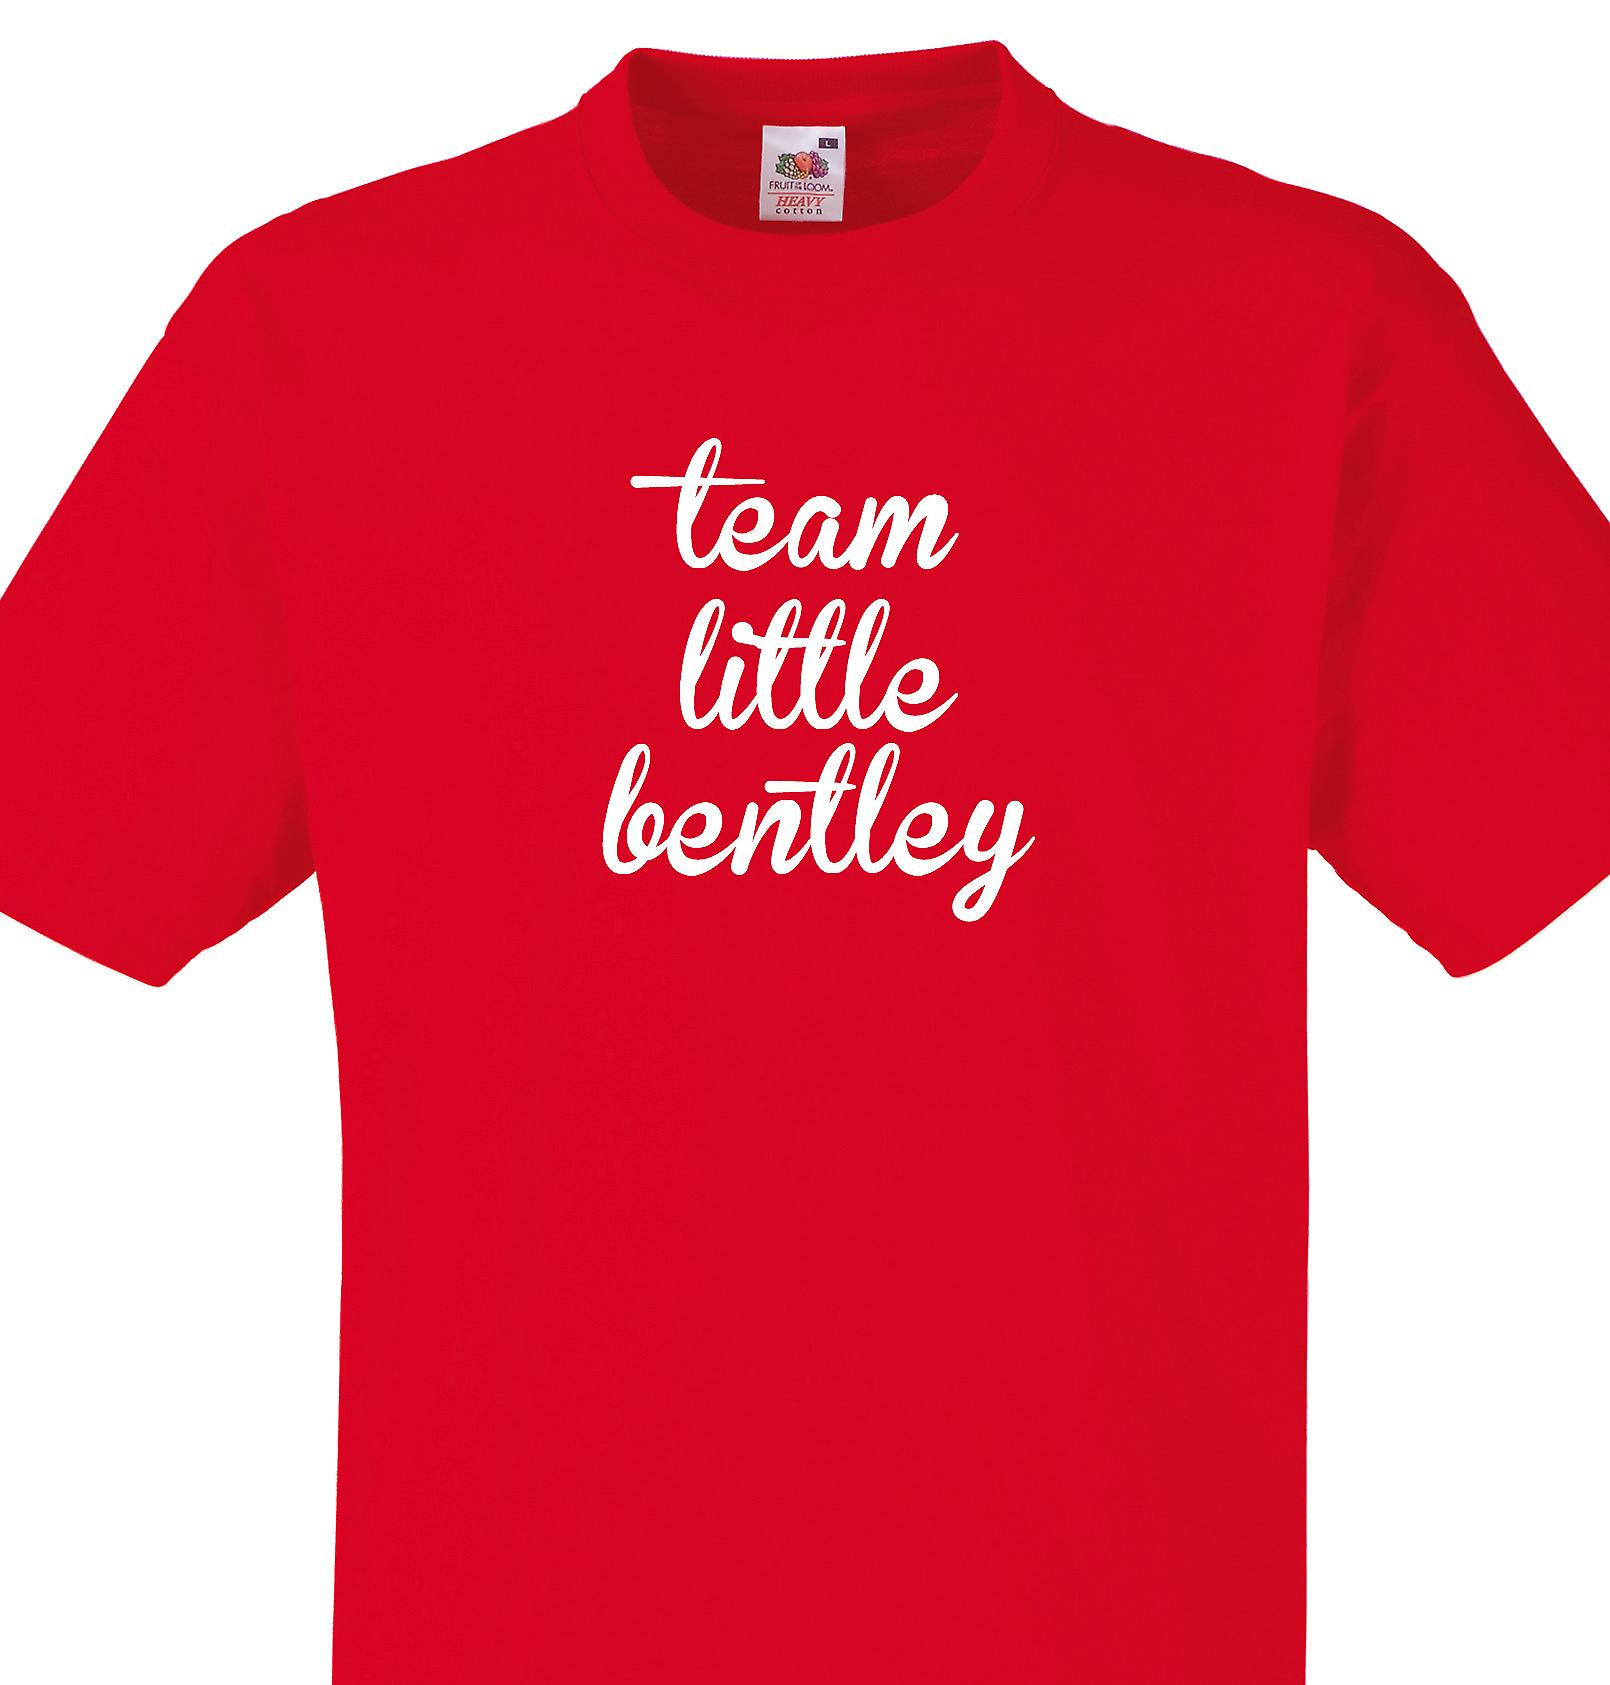 Team Little bentley Red T shirt